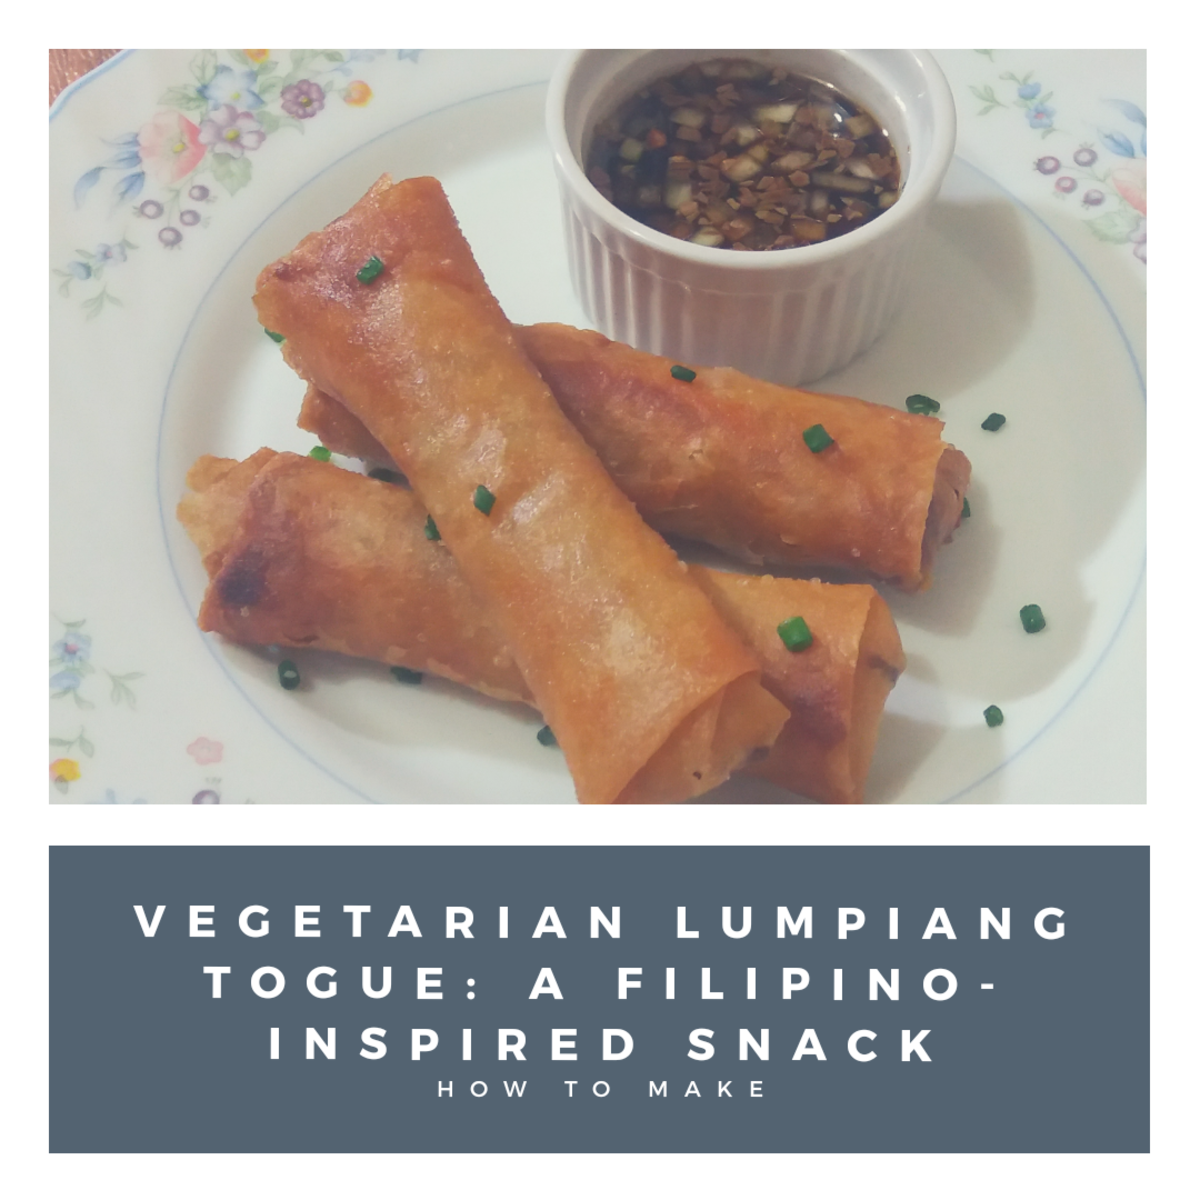 How to Make Vegetarian Lumpiang Togue: A Filipino Snack